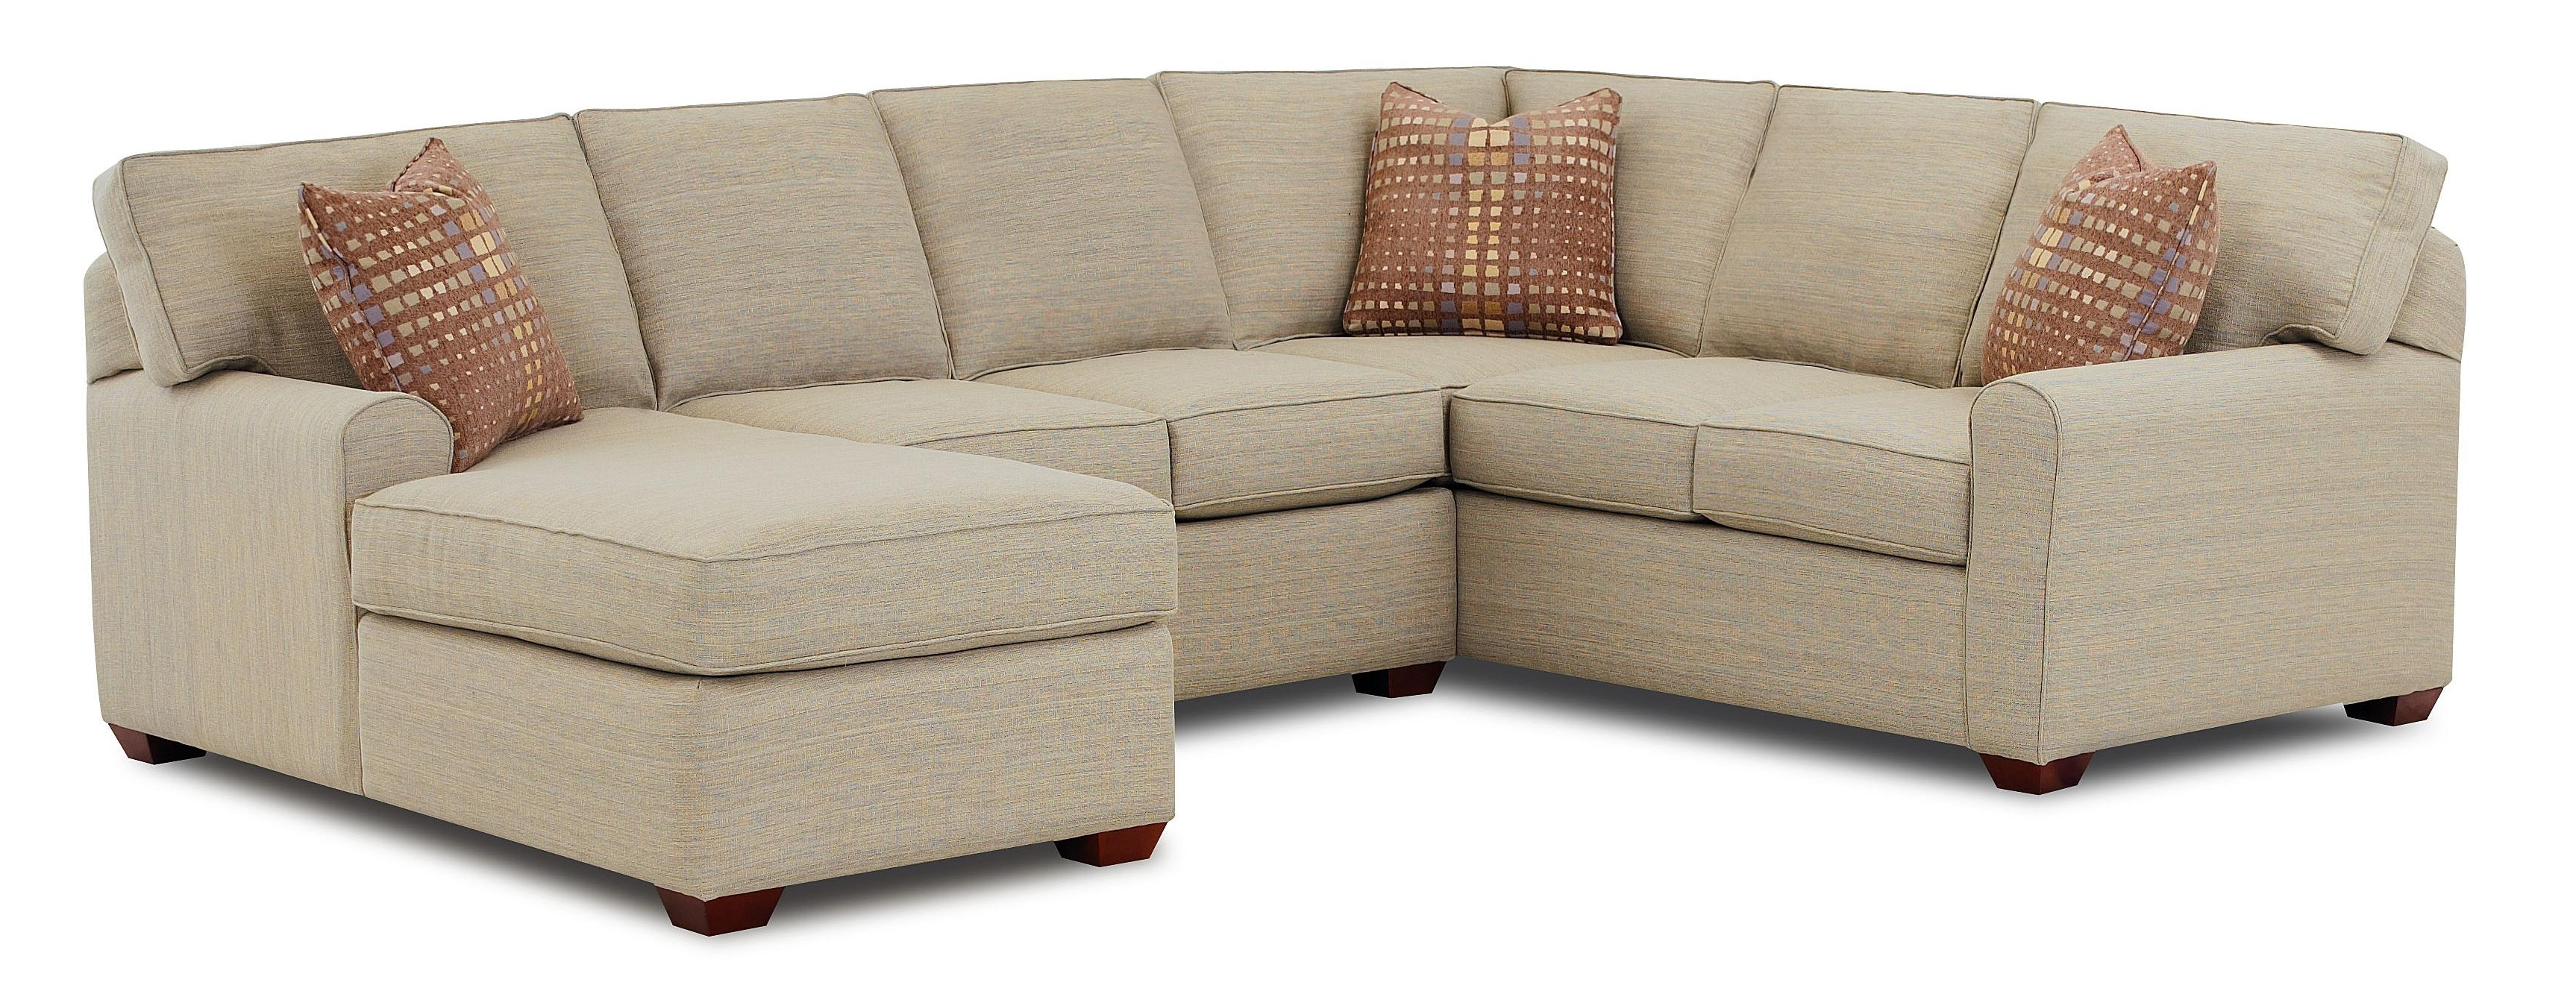 2017 Sofas : Leather Chaise Sofa Microfiber Sectional Sofa Large In Chaise Lounge Sectional Sofas (View 7 of 15)